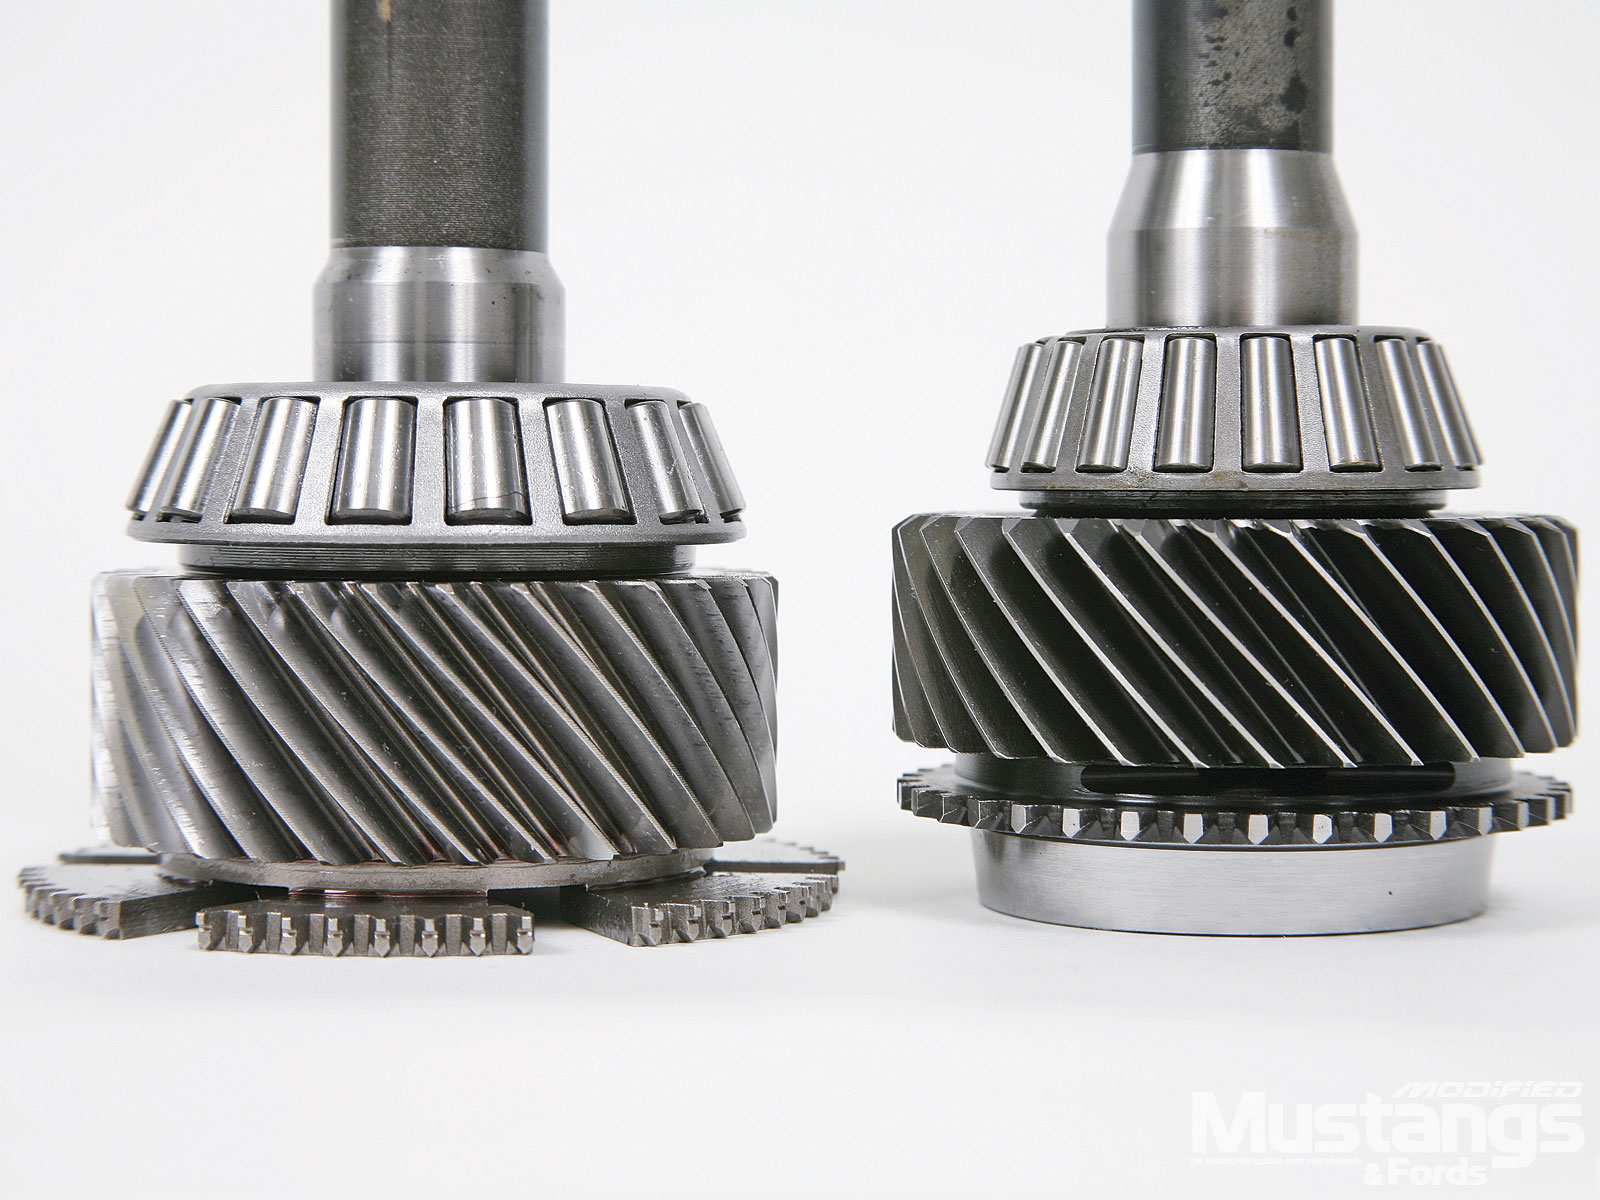 Magnum Six Speed Gear Box Input Shafts Comparison